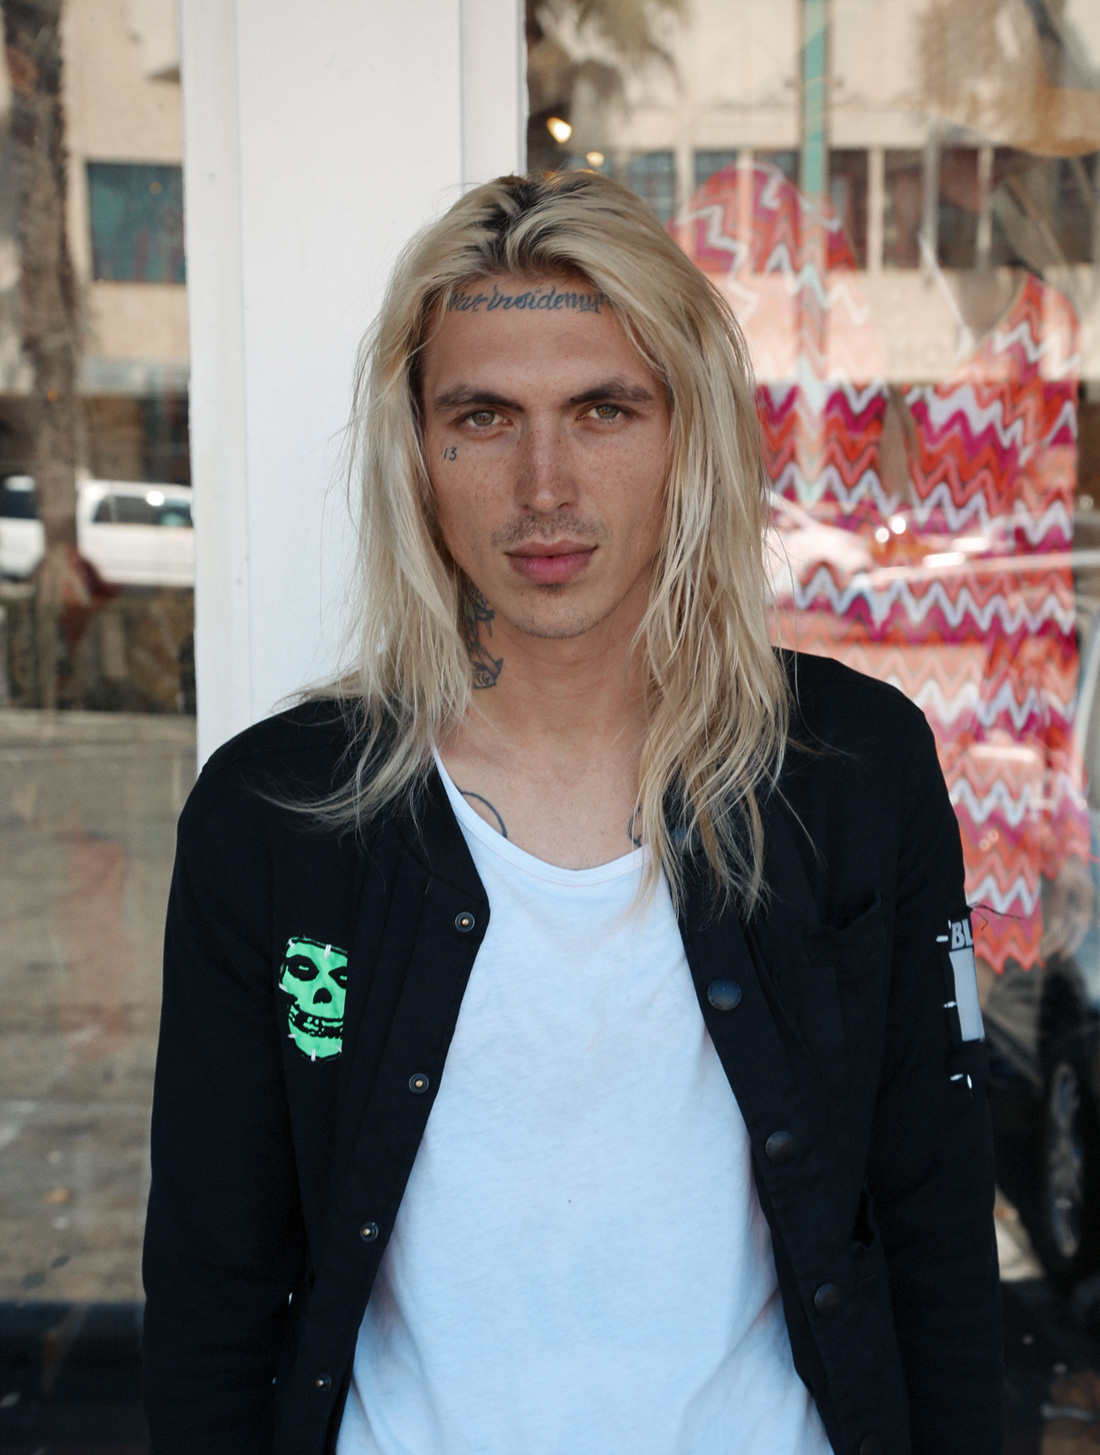 lana del rey bradley soileau dating website The famous male model, well known for his character in the videoclip born to die from lana del rey, and his severals tattoos, is now on interview on.